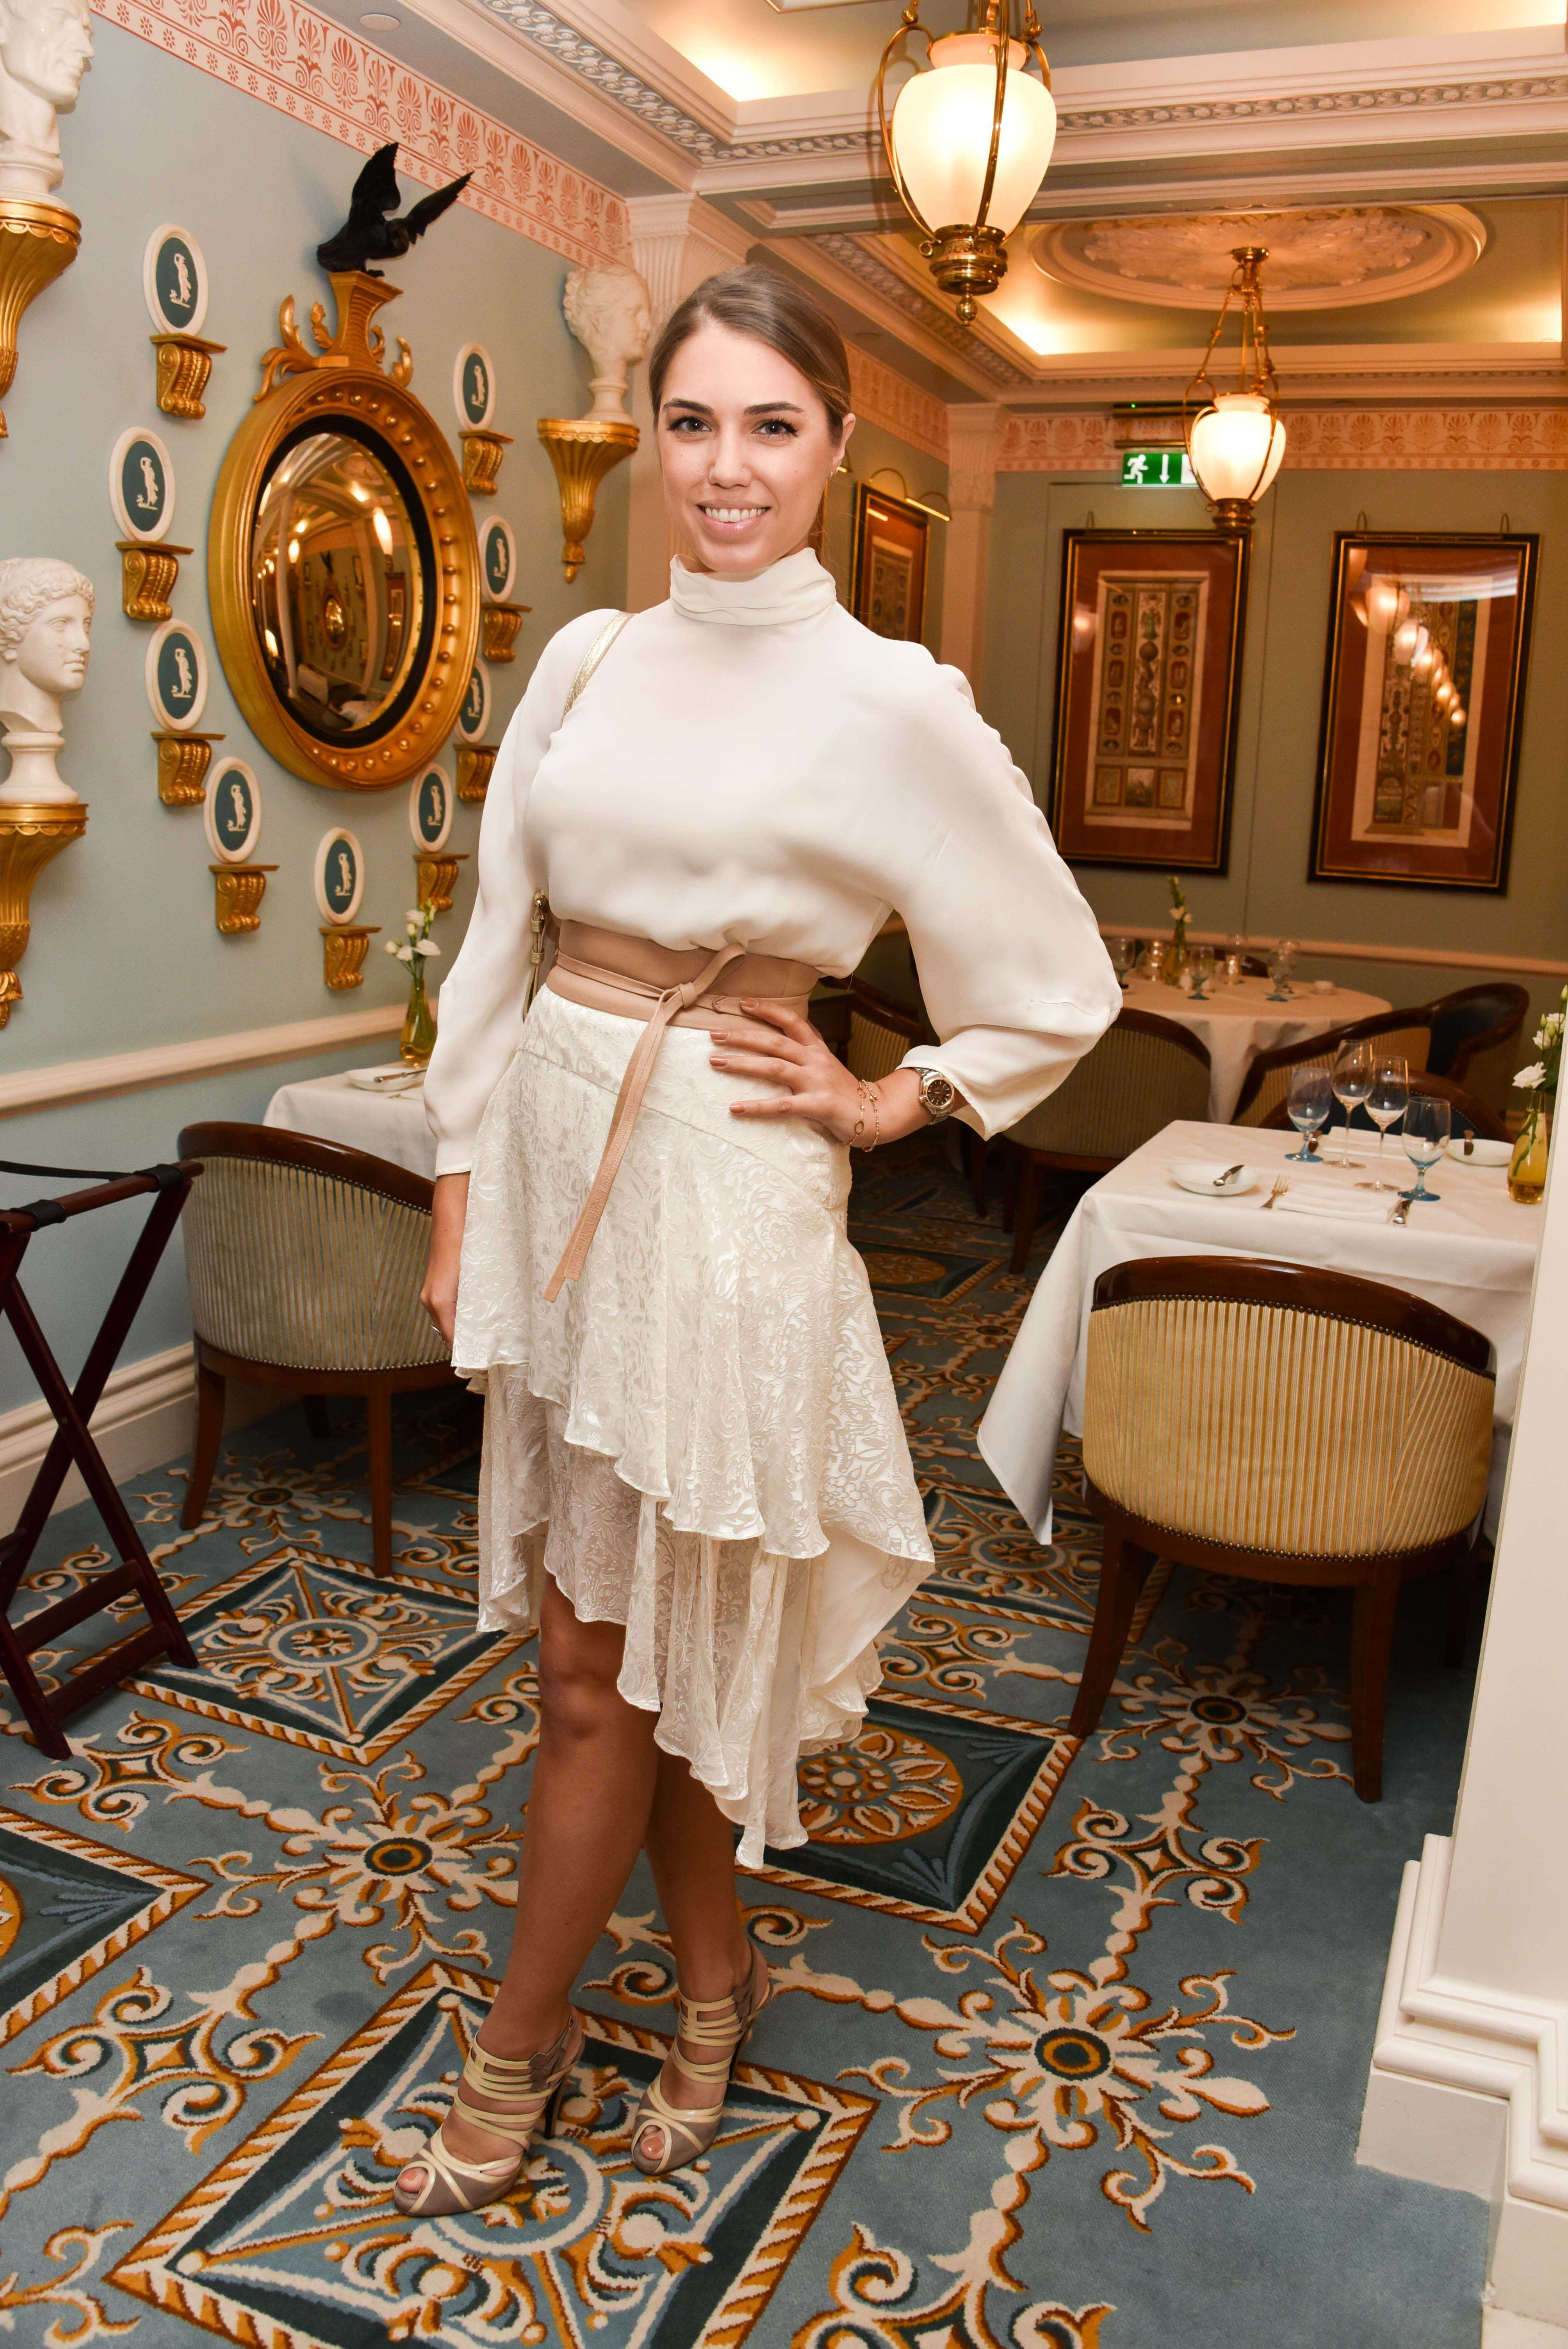 Amber Le Bon Nude 49 hot pictures of amber le bon are here to turn your sad